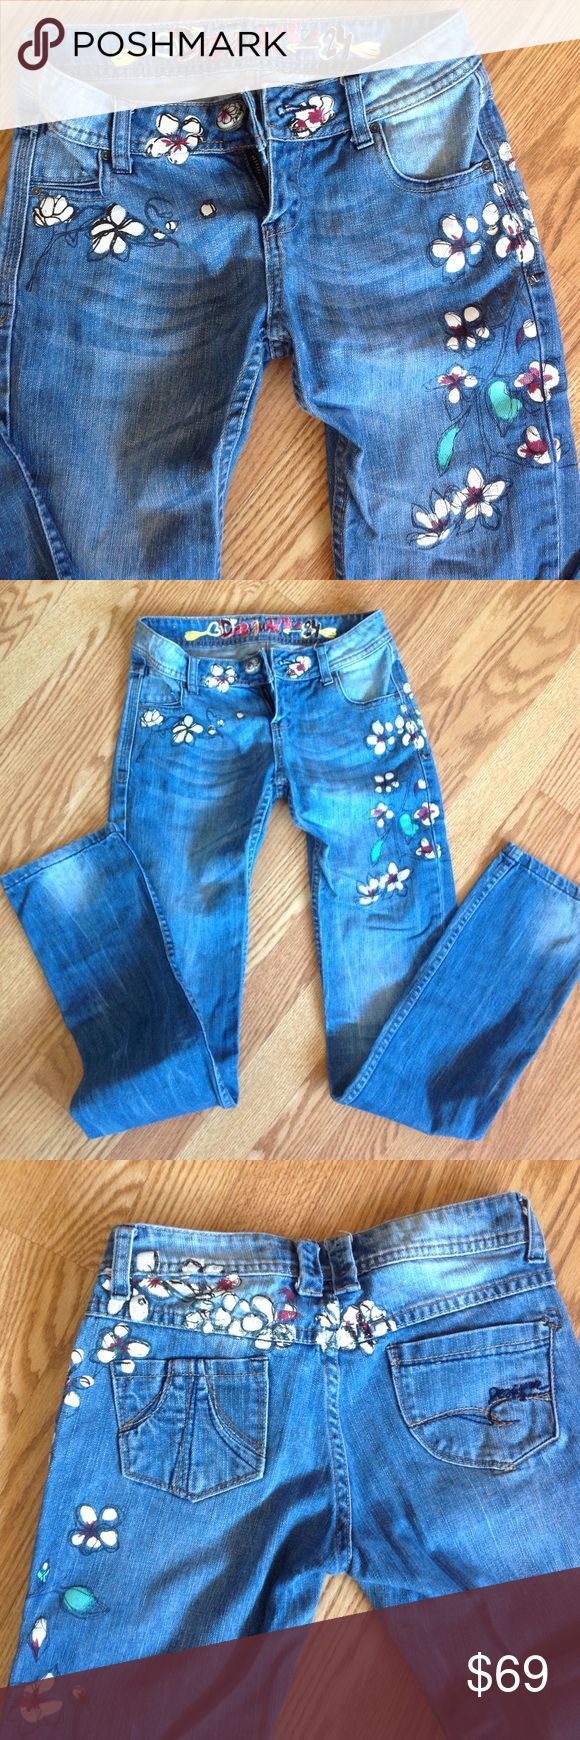 Desigual jeans with painted flowers Beautiful jeans with flowers painted on front and back. Lost weight and now they don't fit. Only worn 2xs. Desigual Jeans Straight Leg